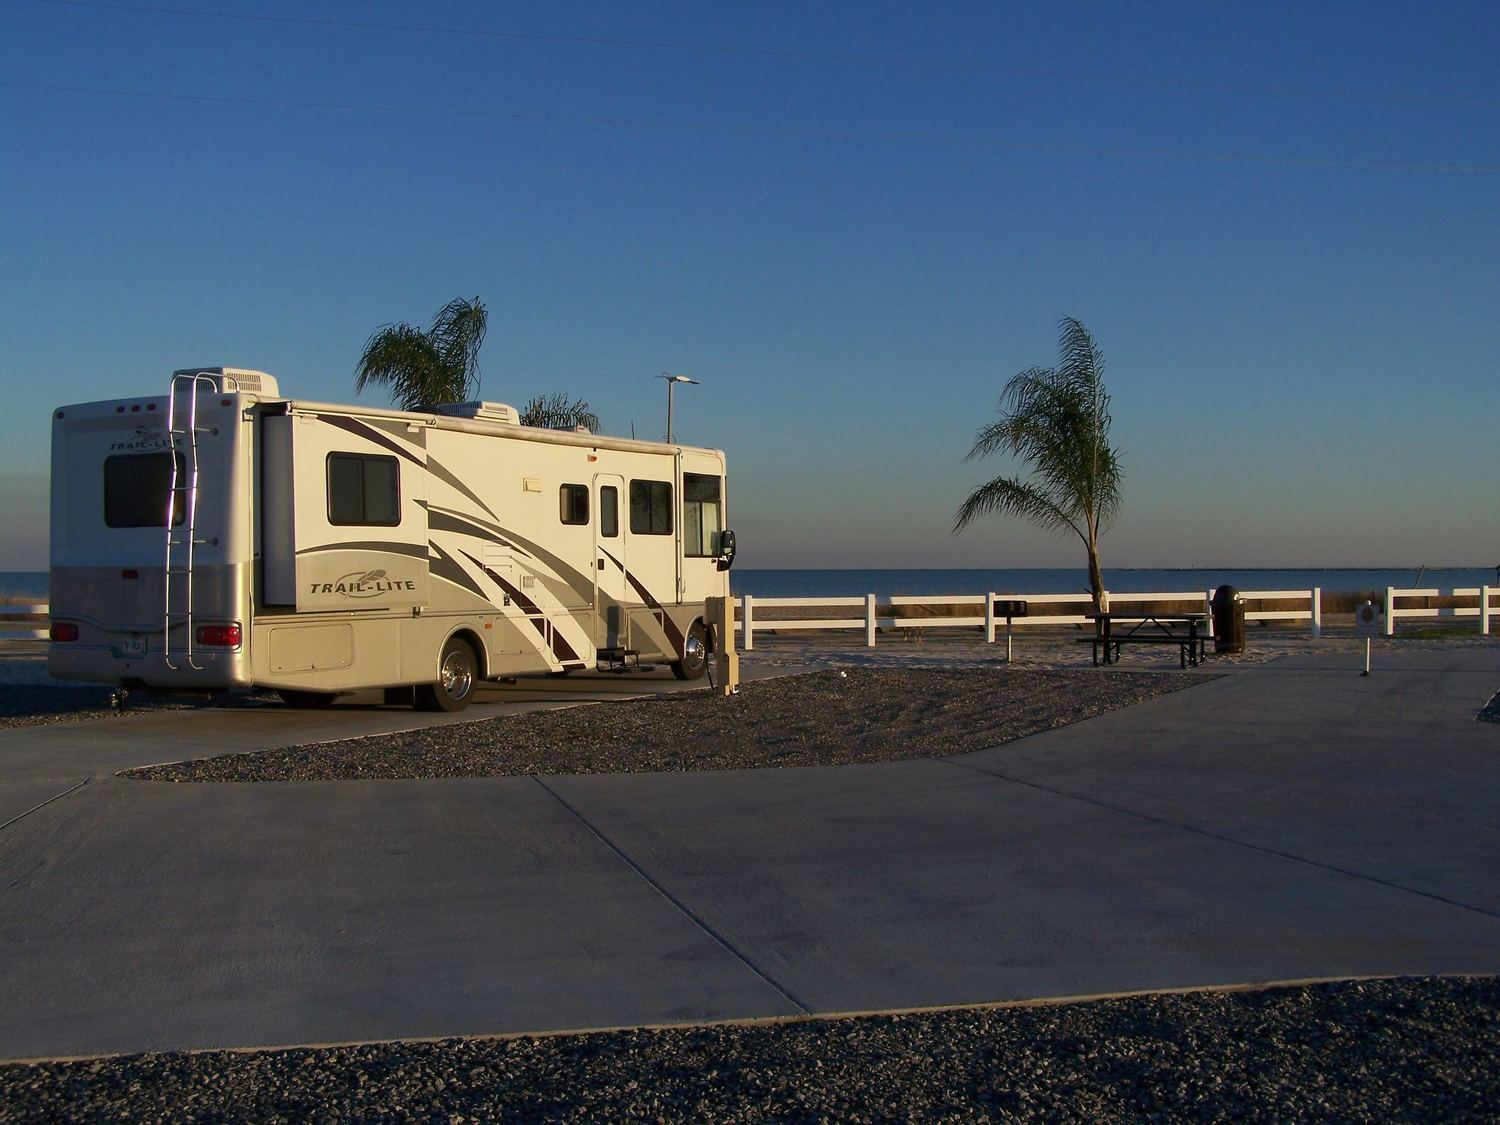 New orleans casino rv parking tai game cabal online 2